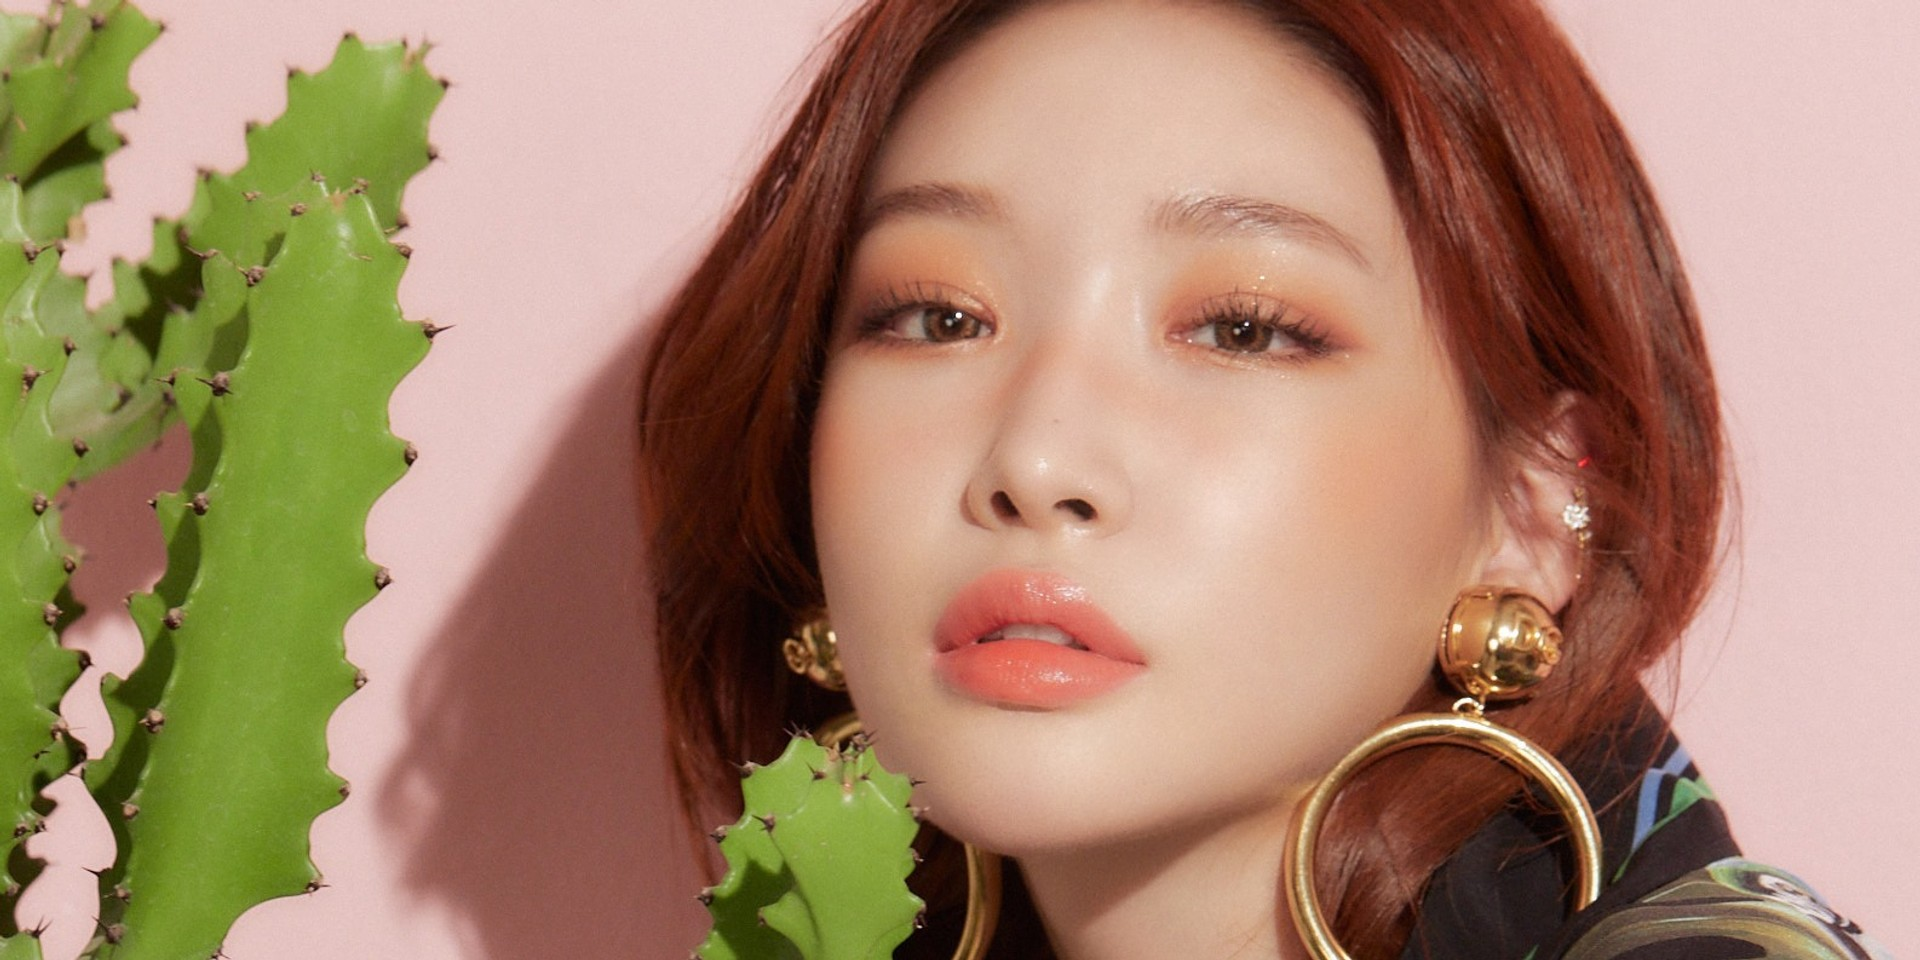 CHUNG HA to release first full album 'QUERENCIA' in January, plus collaborative single with R3HAB